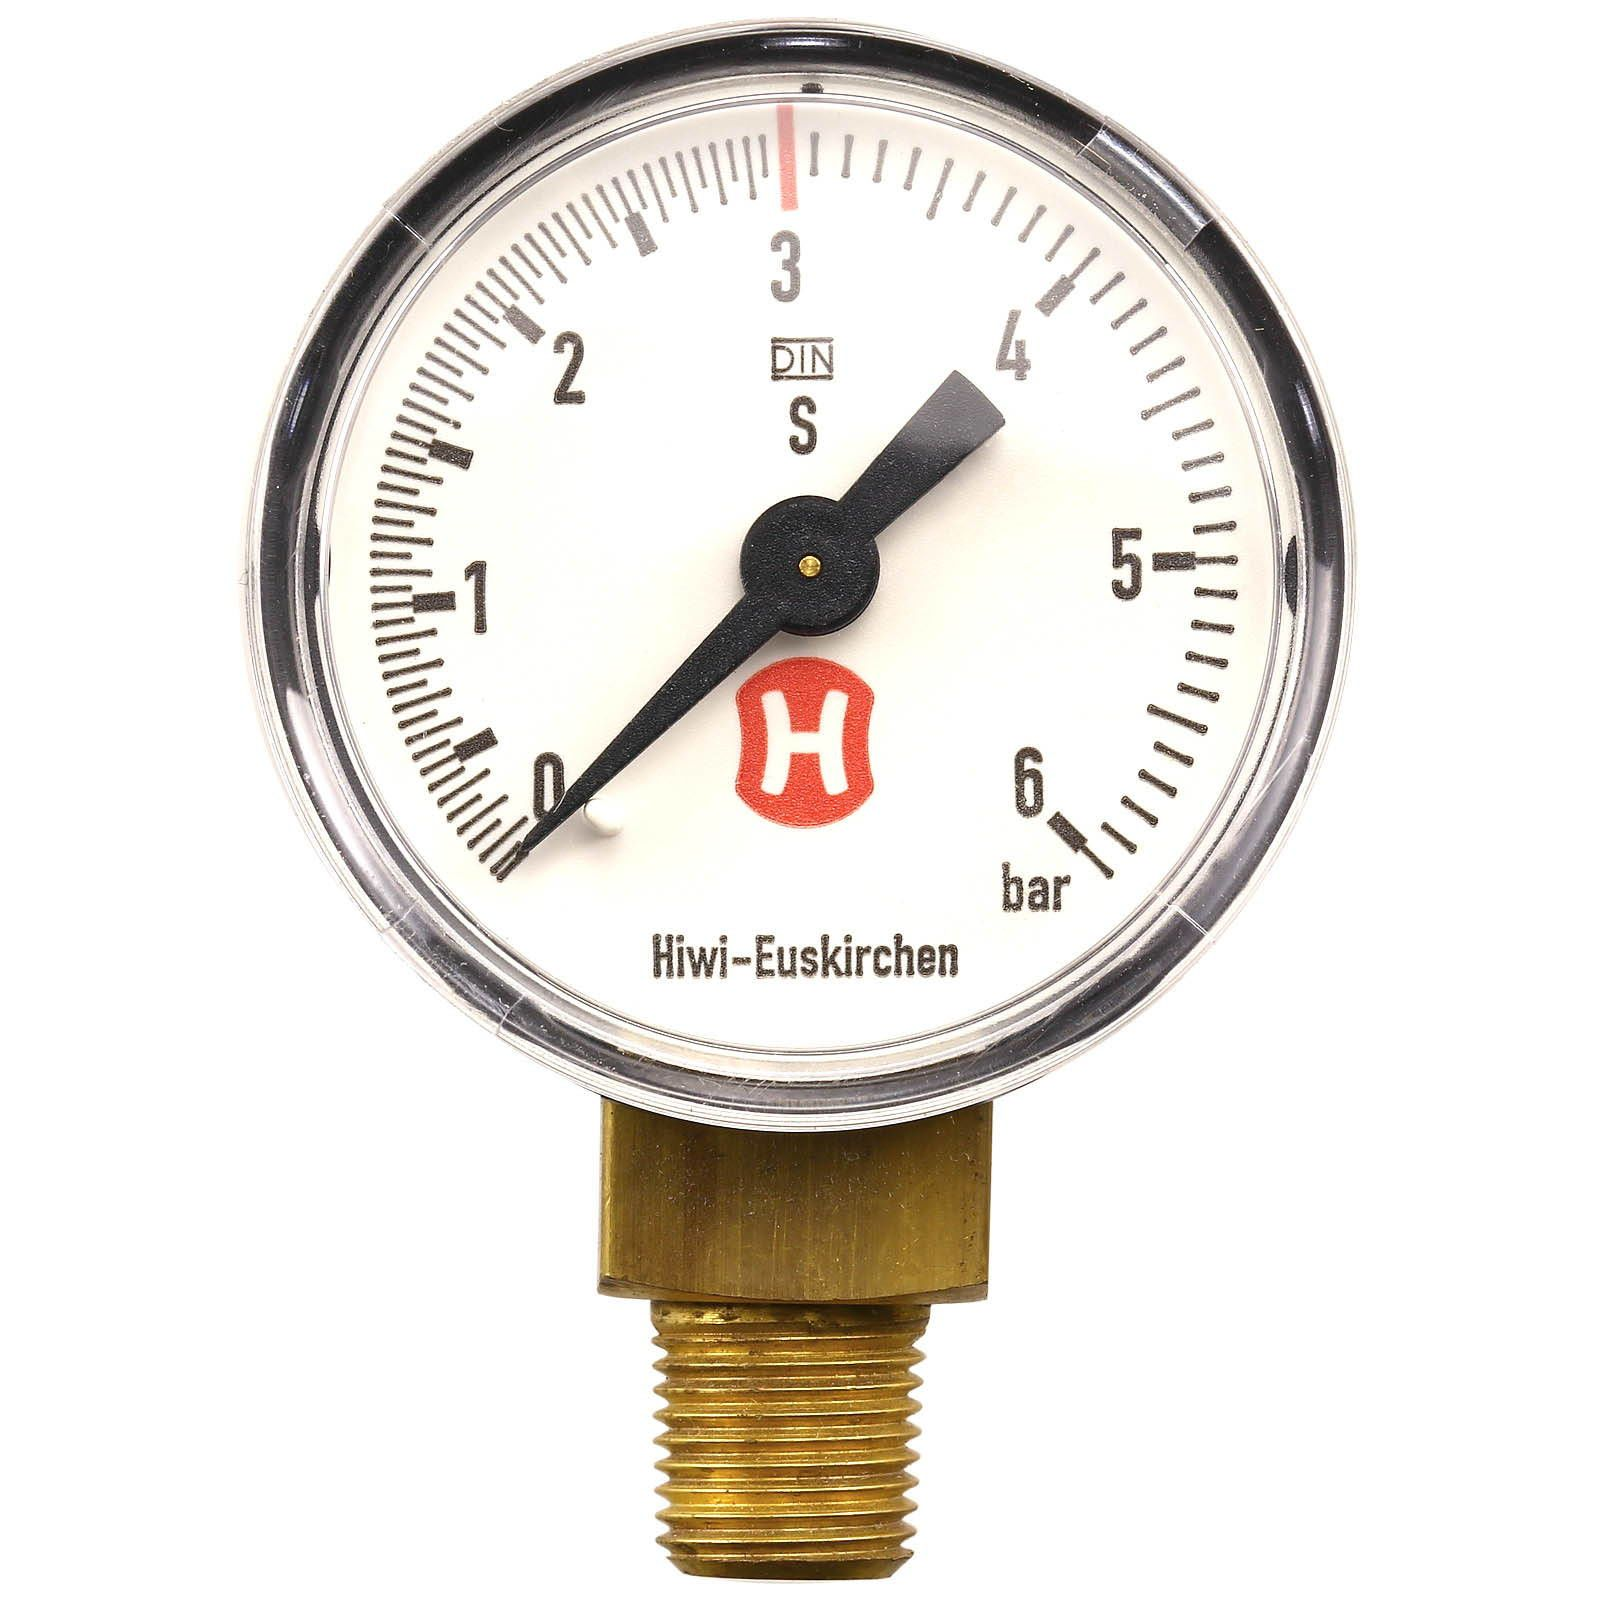 Hiwi - Working pressure gauge - 6 bar